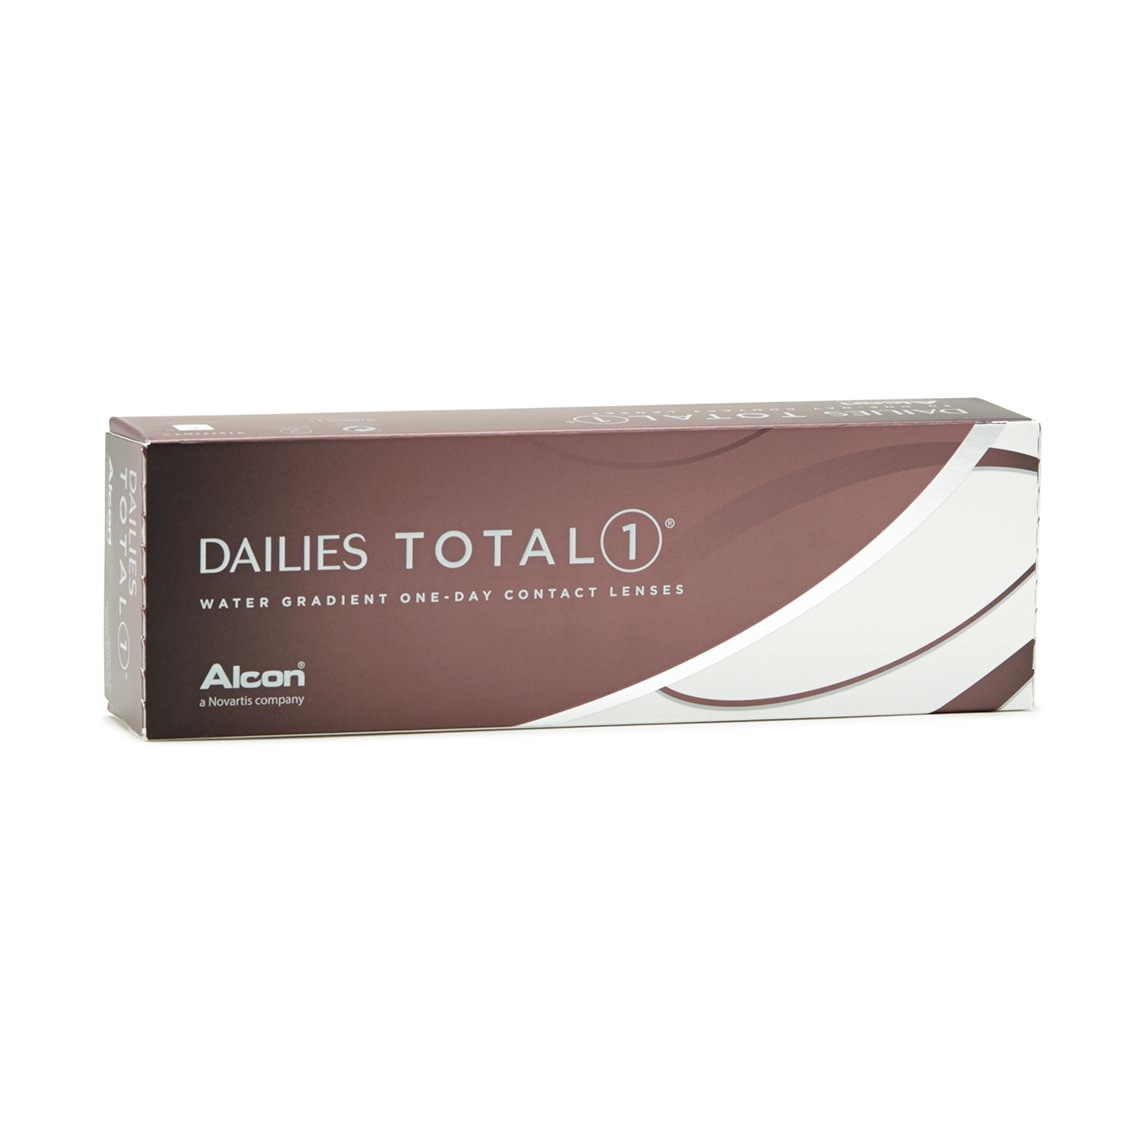 Dagslinser - Dailies Total 1 30 pack